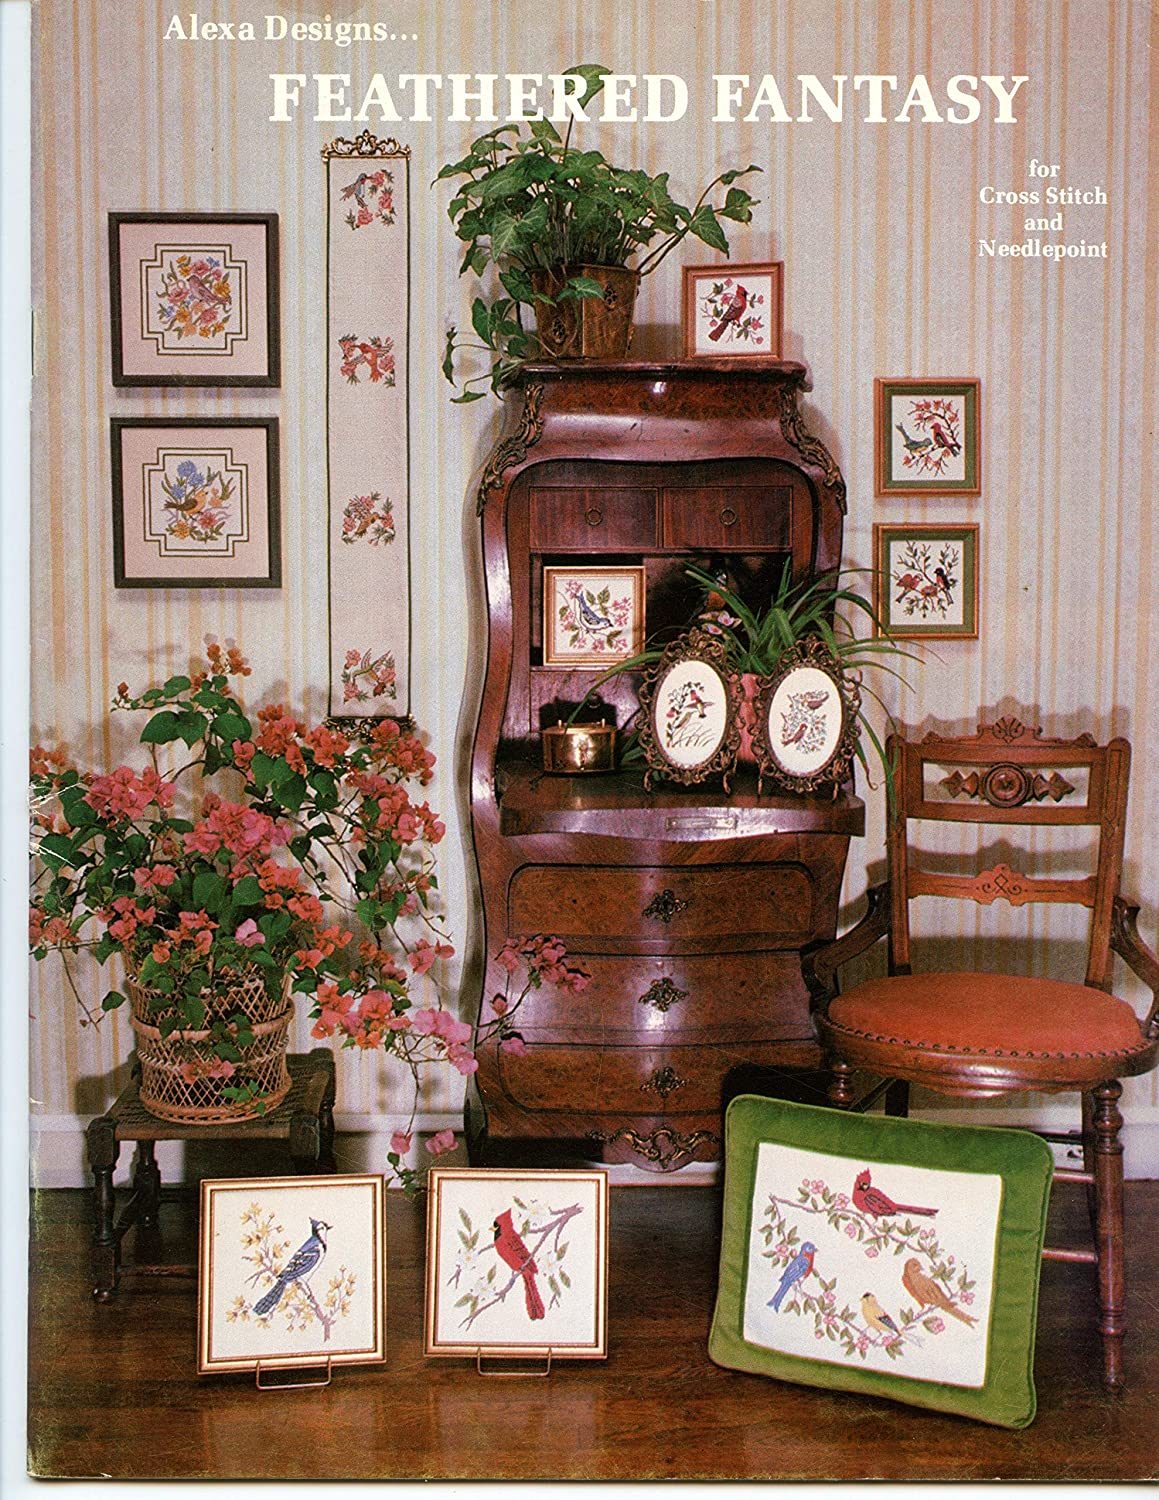 Alexa Designs...Feathered Fantasy for Cross Stitch and Needlepoint Jeanine Alexander Sherman